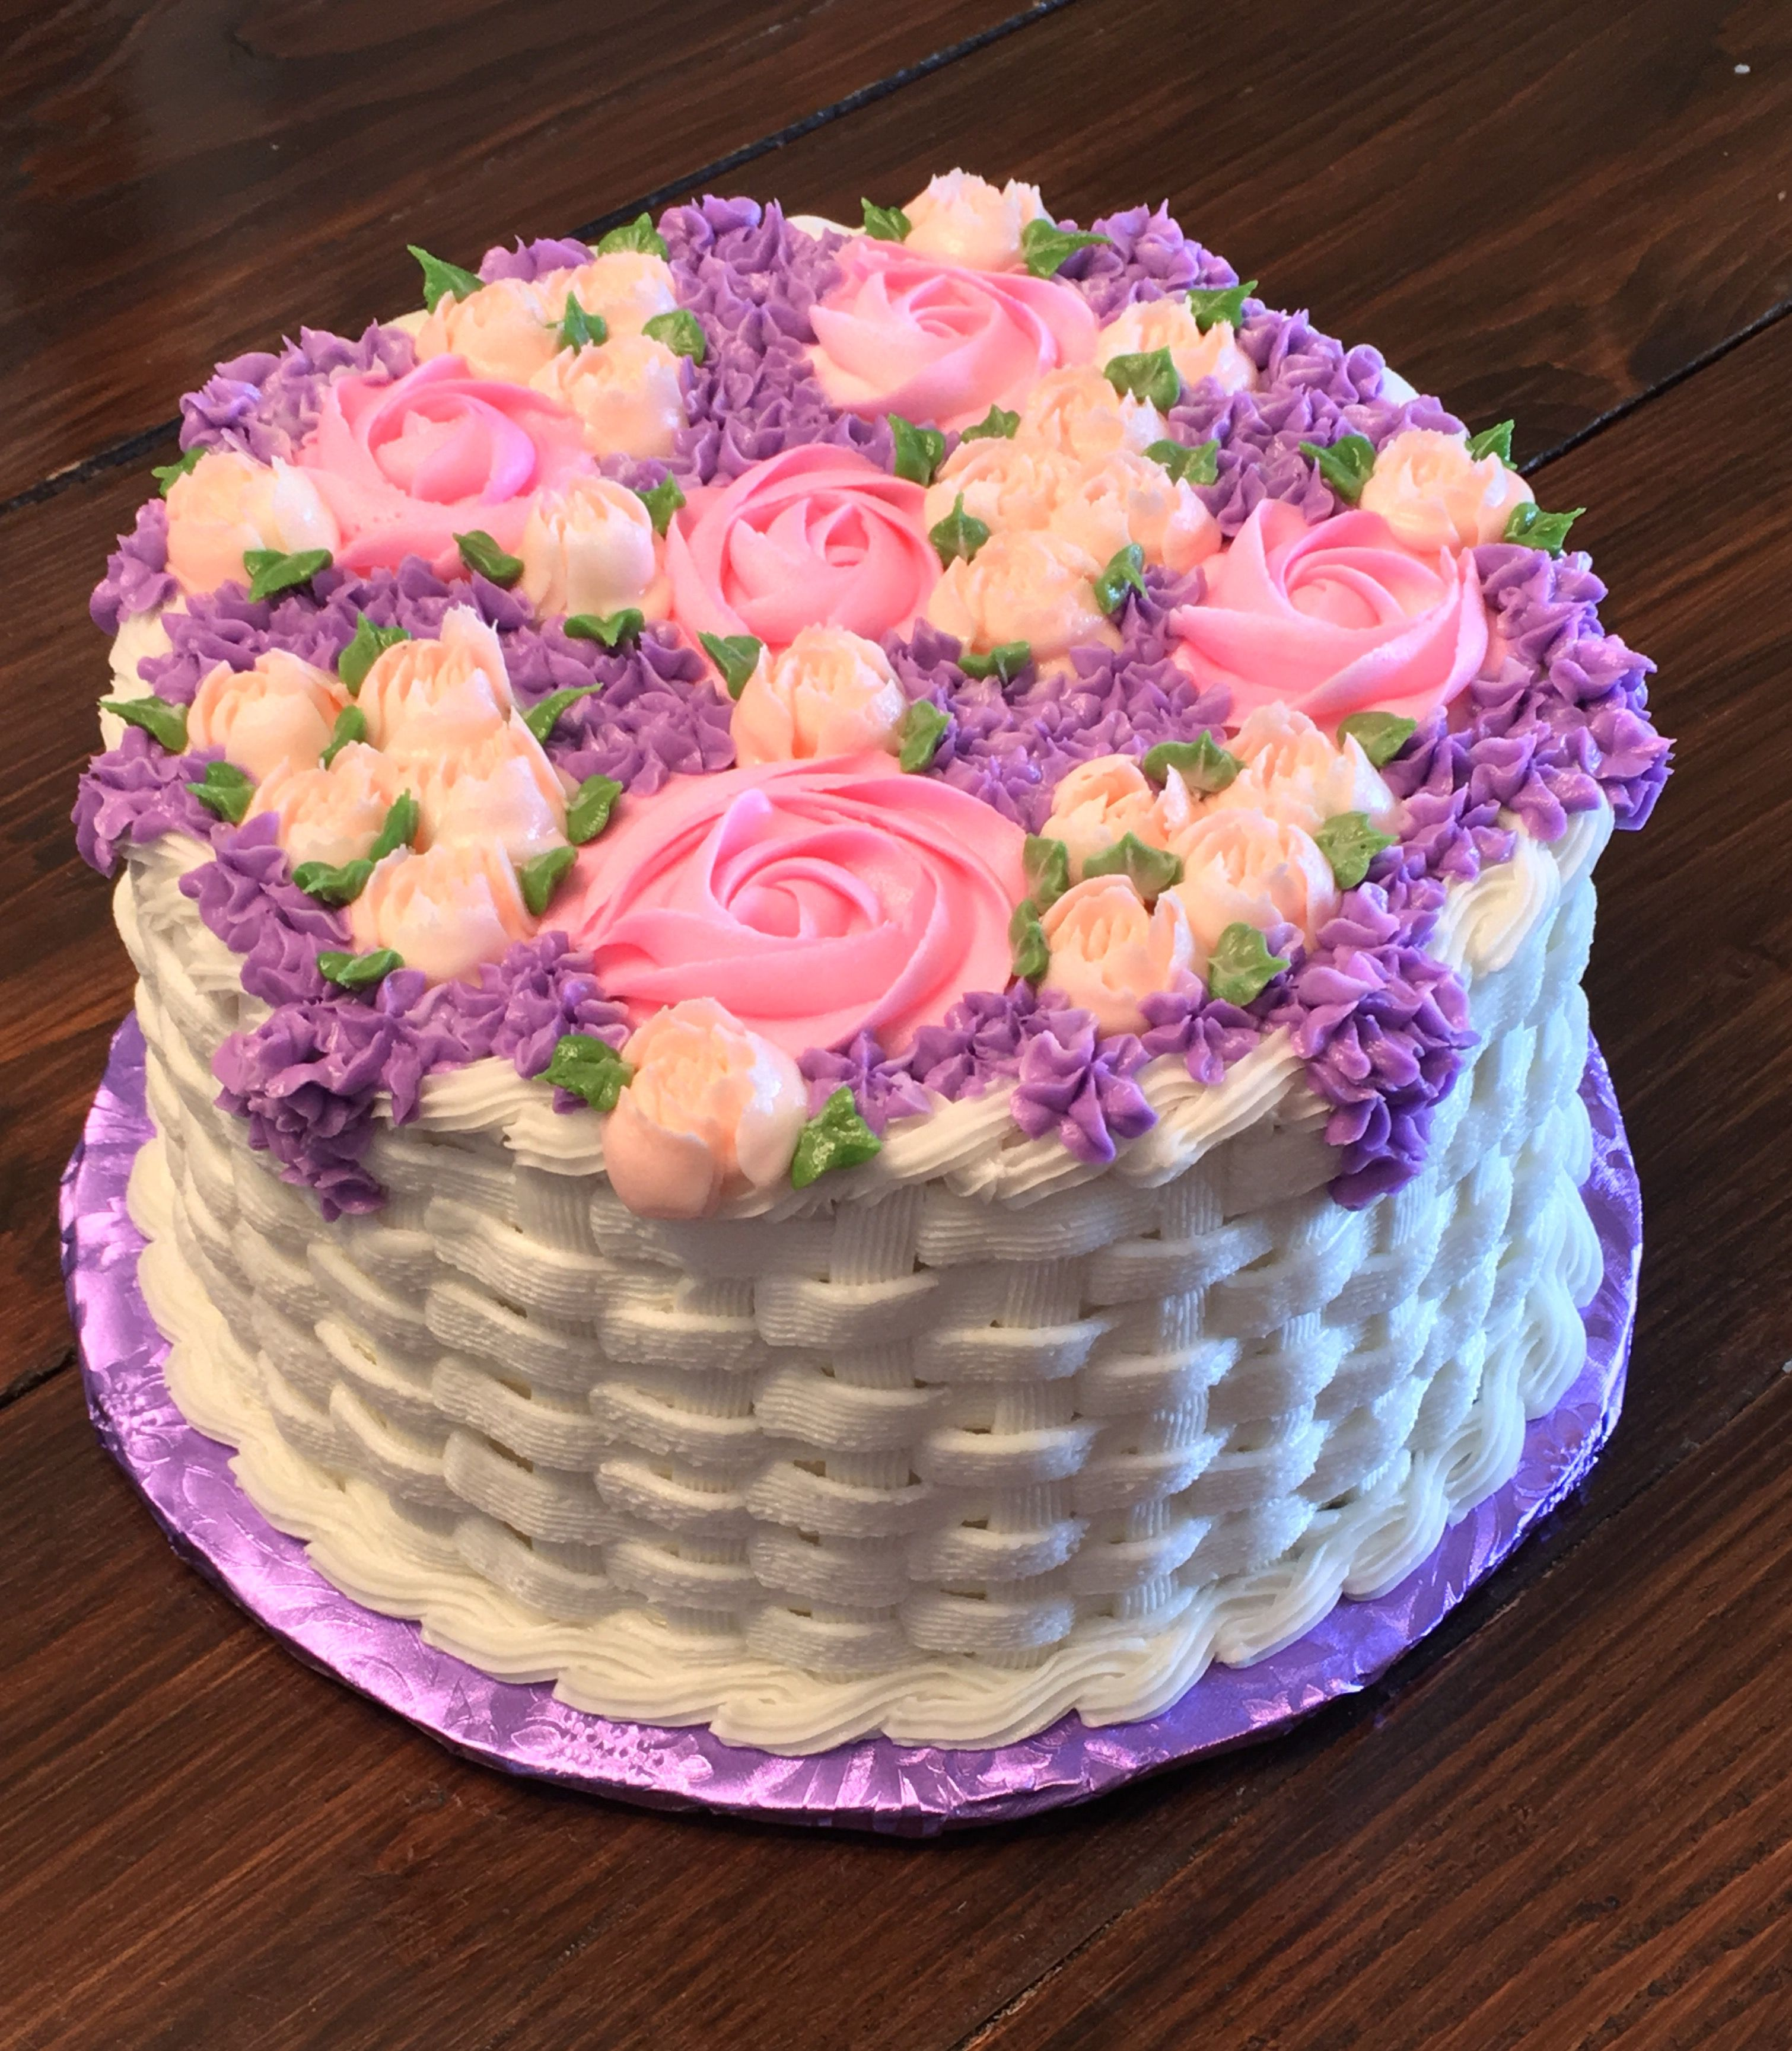 Flower Basket Cake Cake Decorating Cake Decorating Amazing Cake